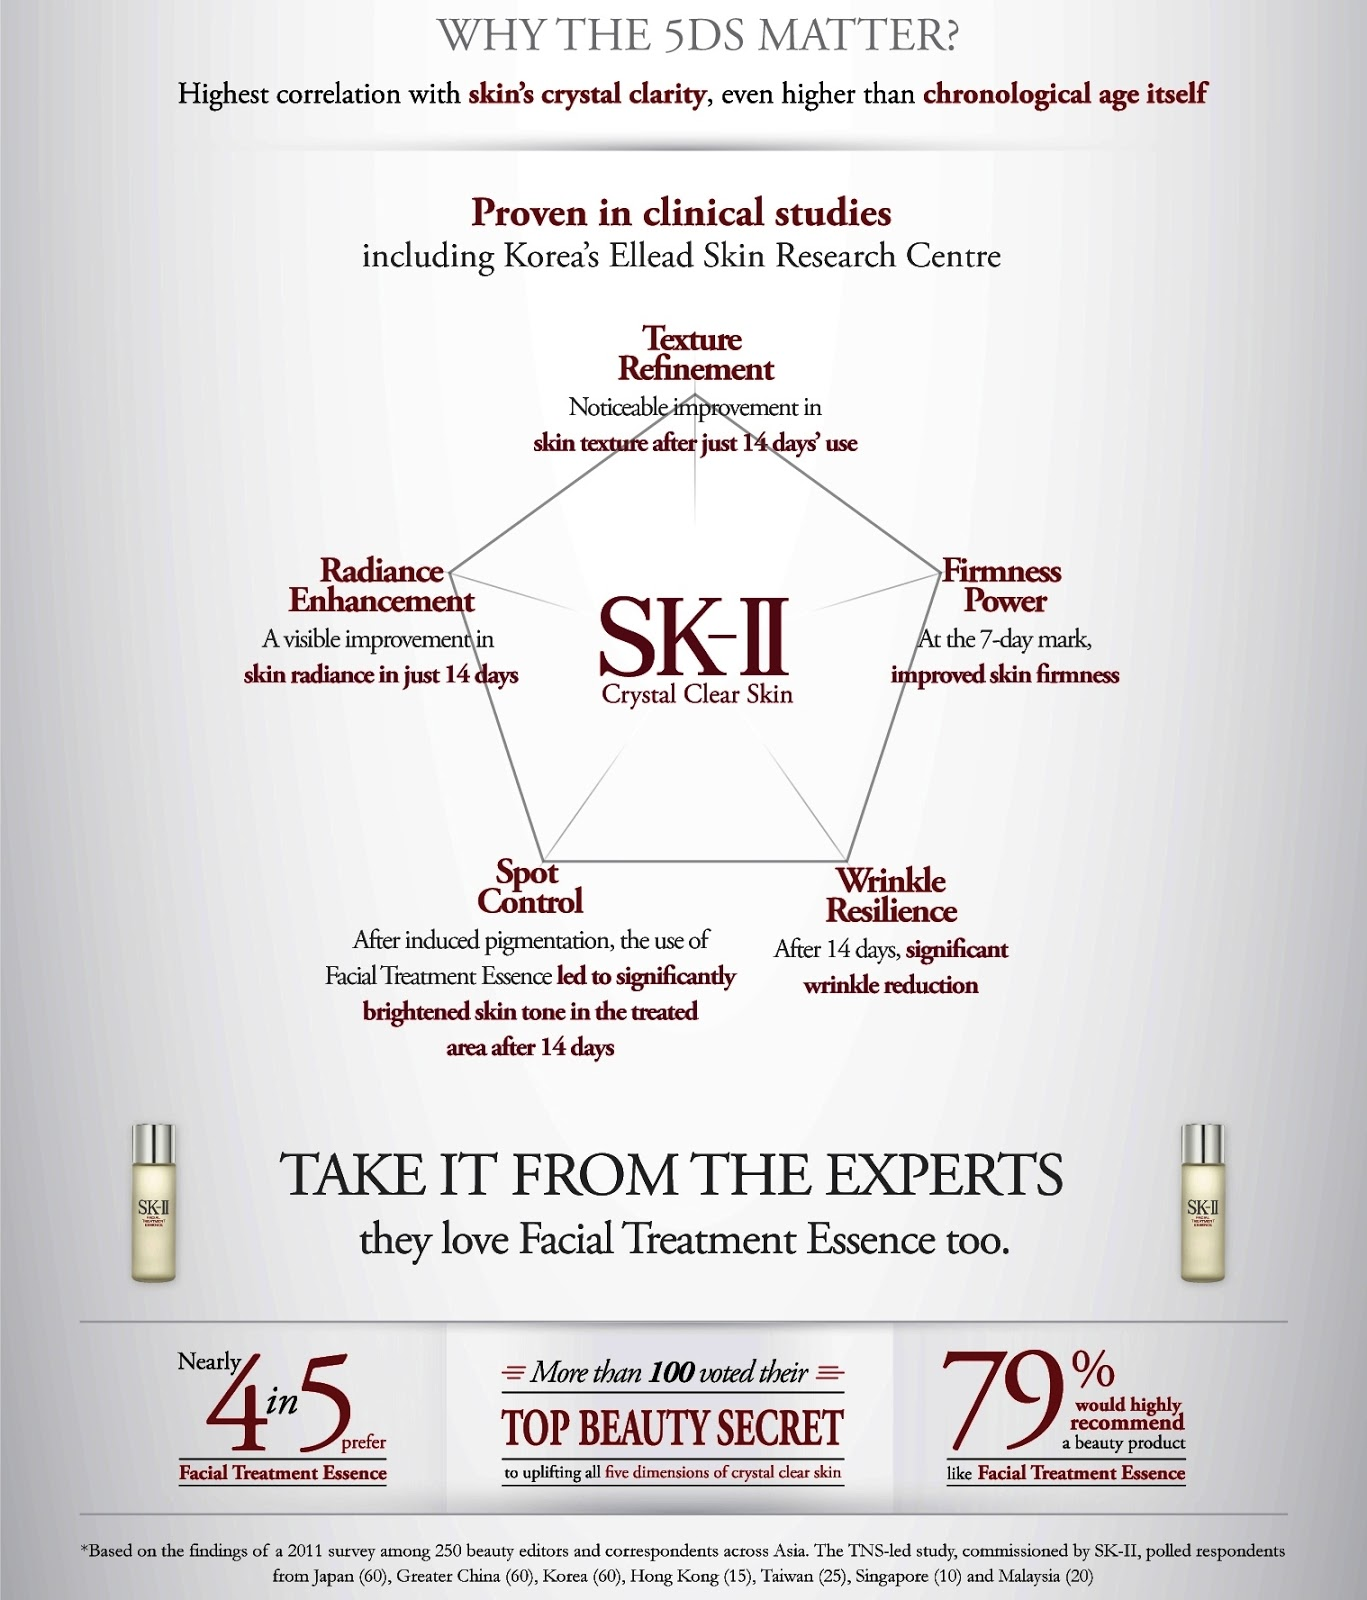 sk-ii-facial-treatment-essence